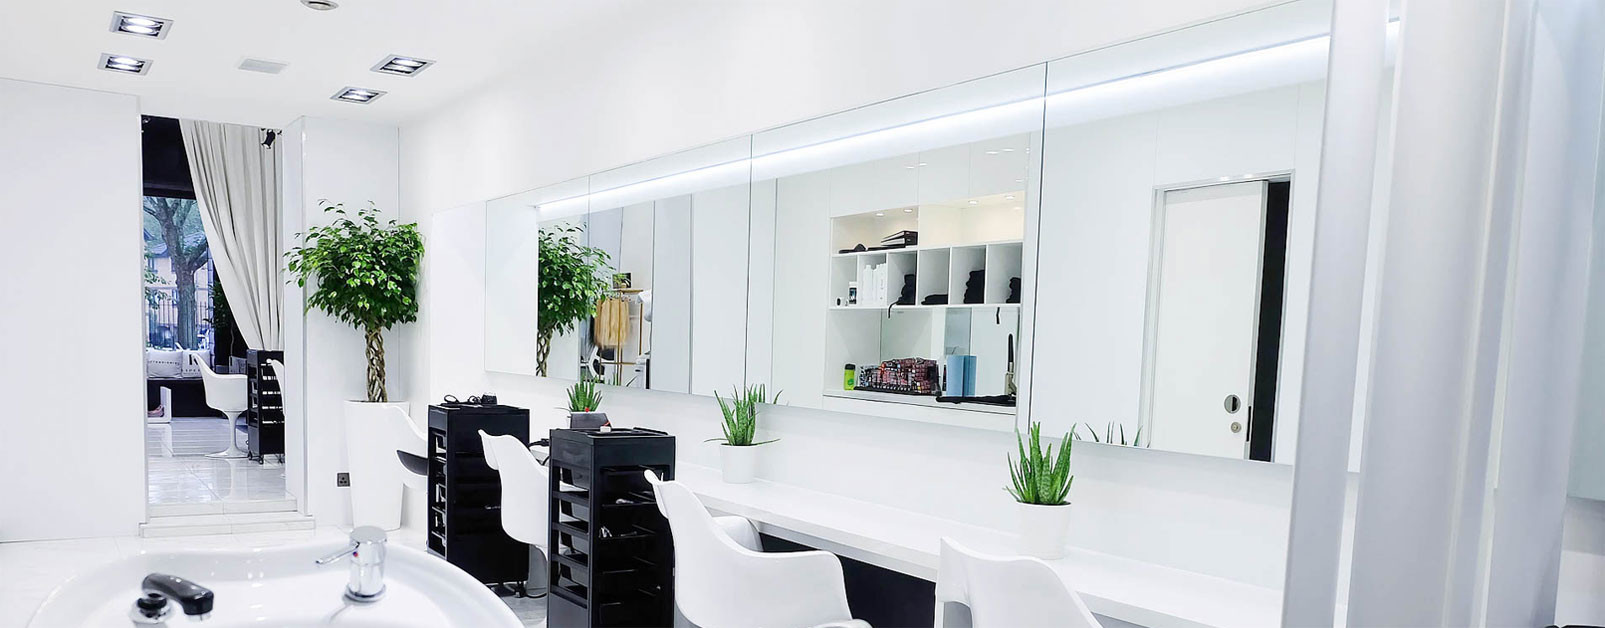 Hair Extensions salon London